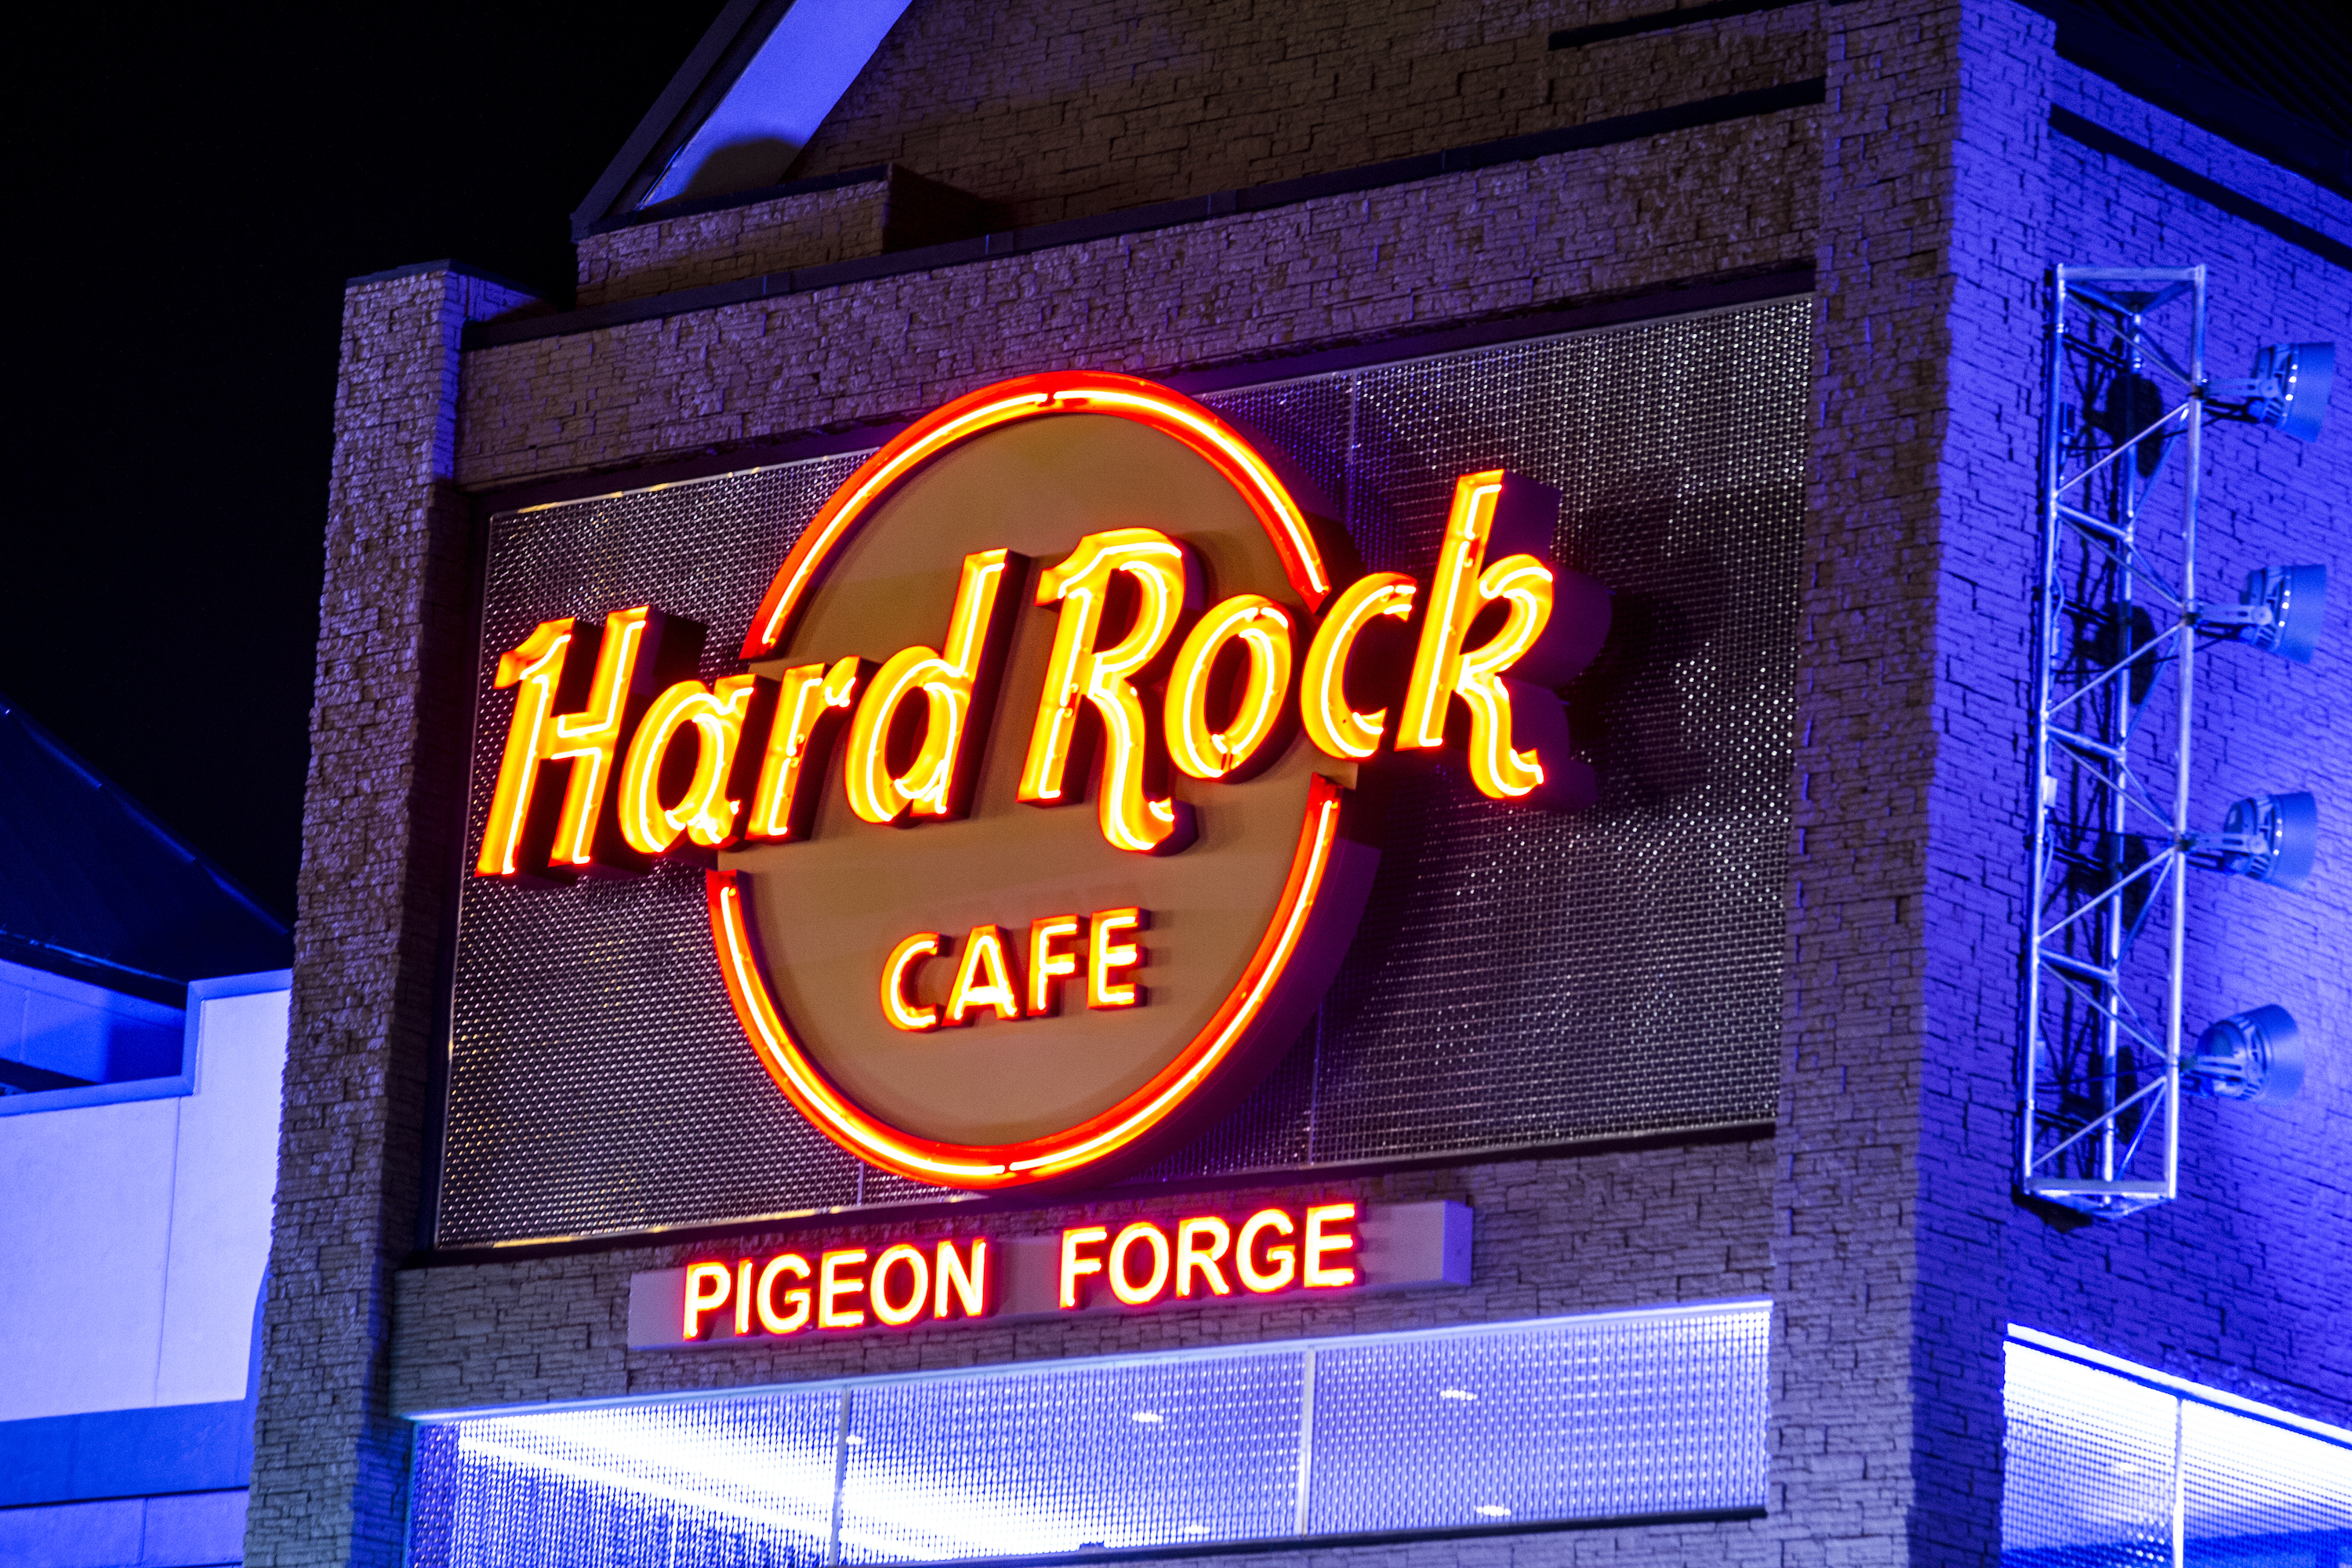 Pigeon Forge Hard Rock Cafe Architect Magazine Pigeon